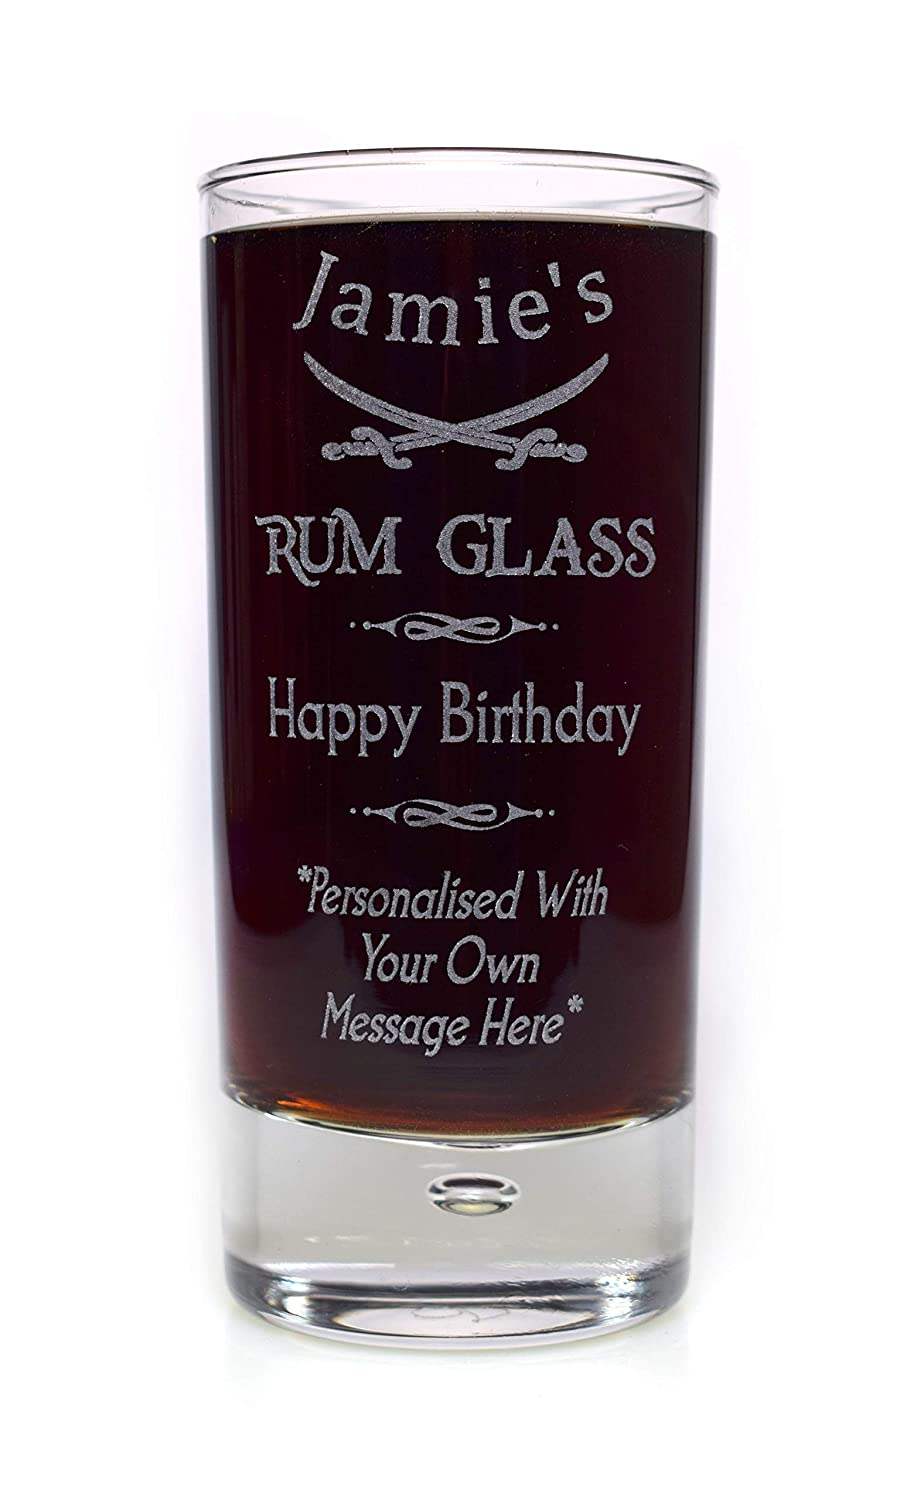 Engraved/Personalised SPECIAL OCCASION RUM HighBall Glass Gift For Mum/Dad/Girls/Boys/Men/Ladies/Women/18th/21st/30th/40th/50th/60th/65th/70th/Birthday/Christmas/Fathers Day/Best Man/Bridesmaid/Usher/Wedding/Graduation/Daughter/Son Cr8 A Gift